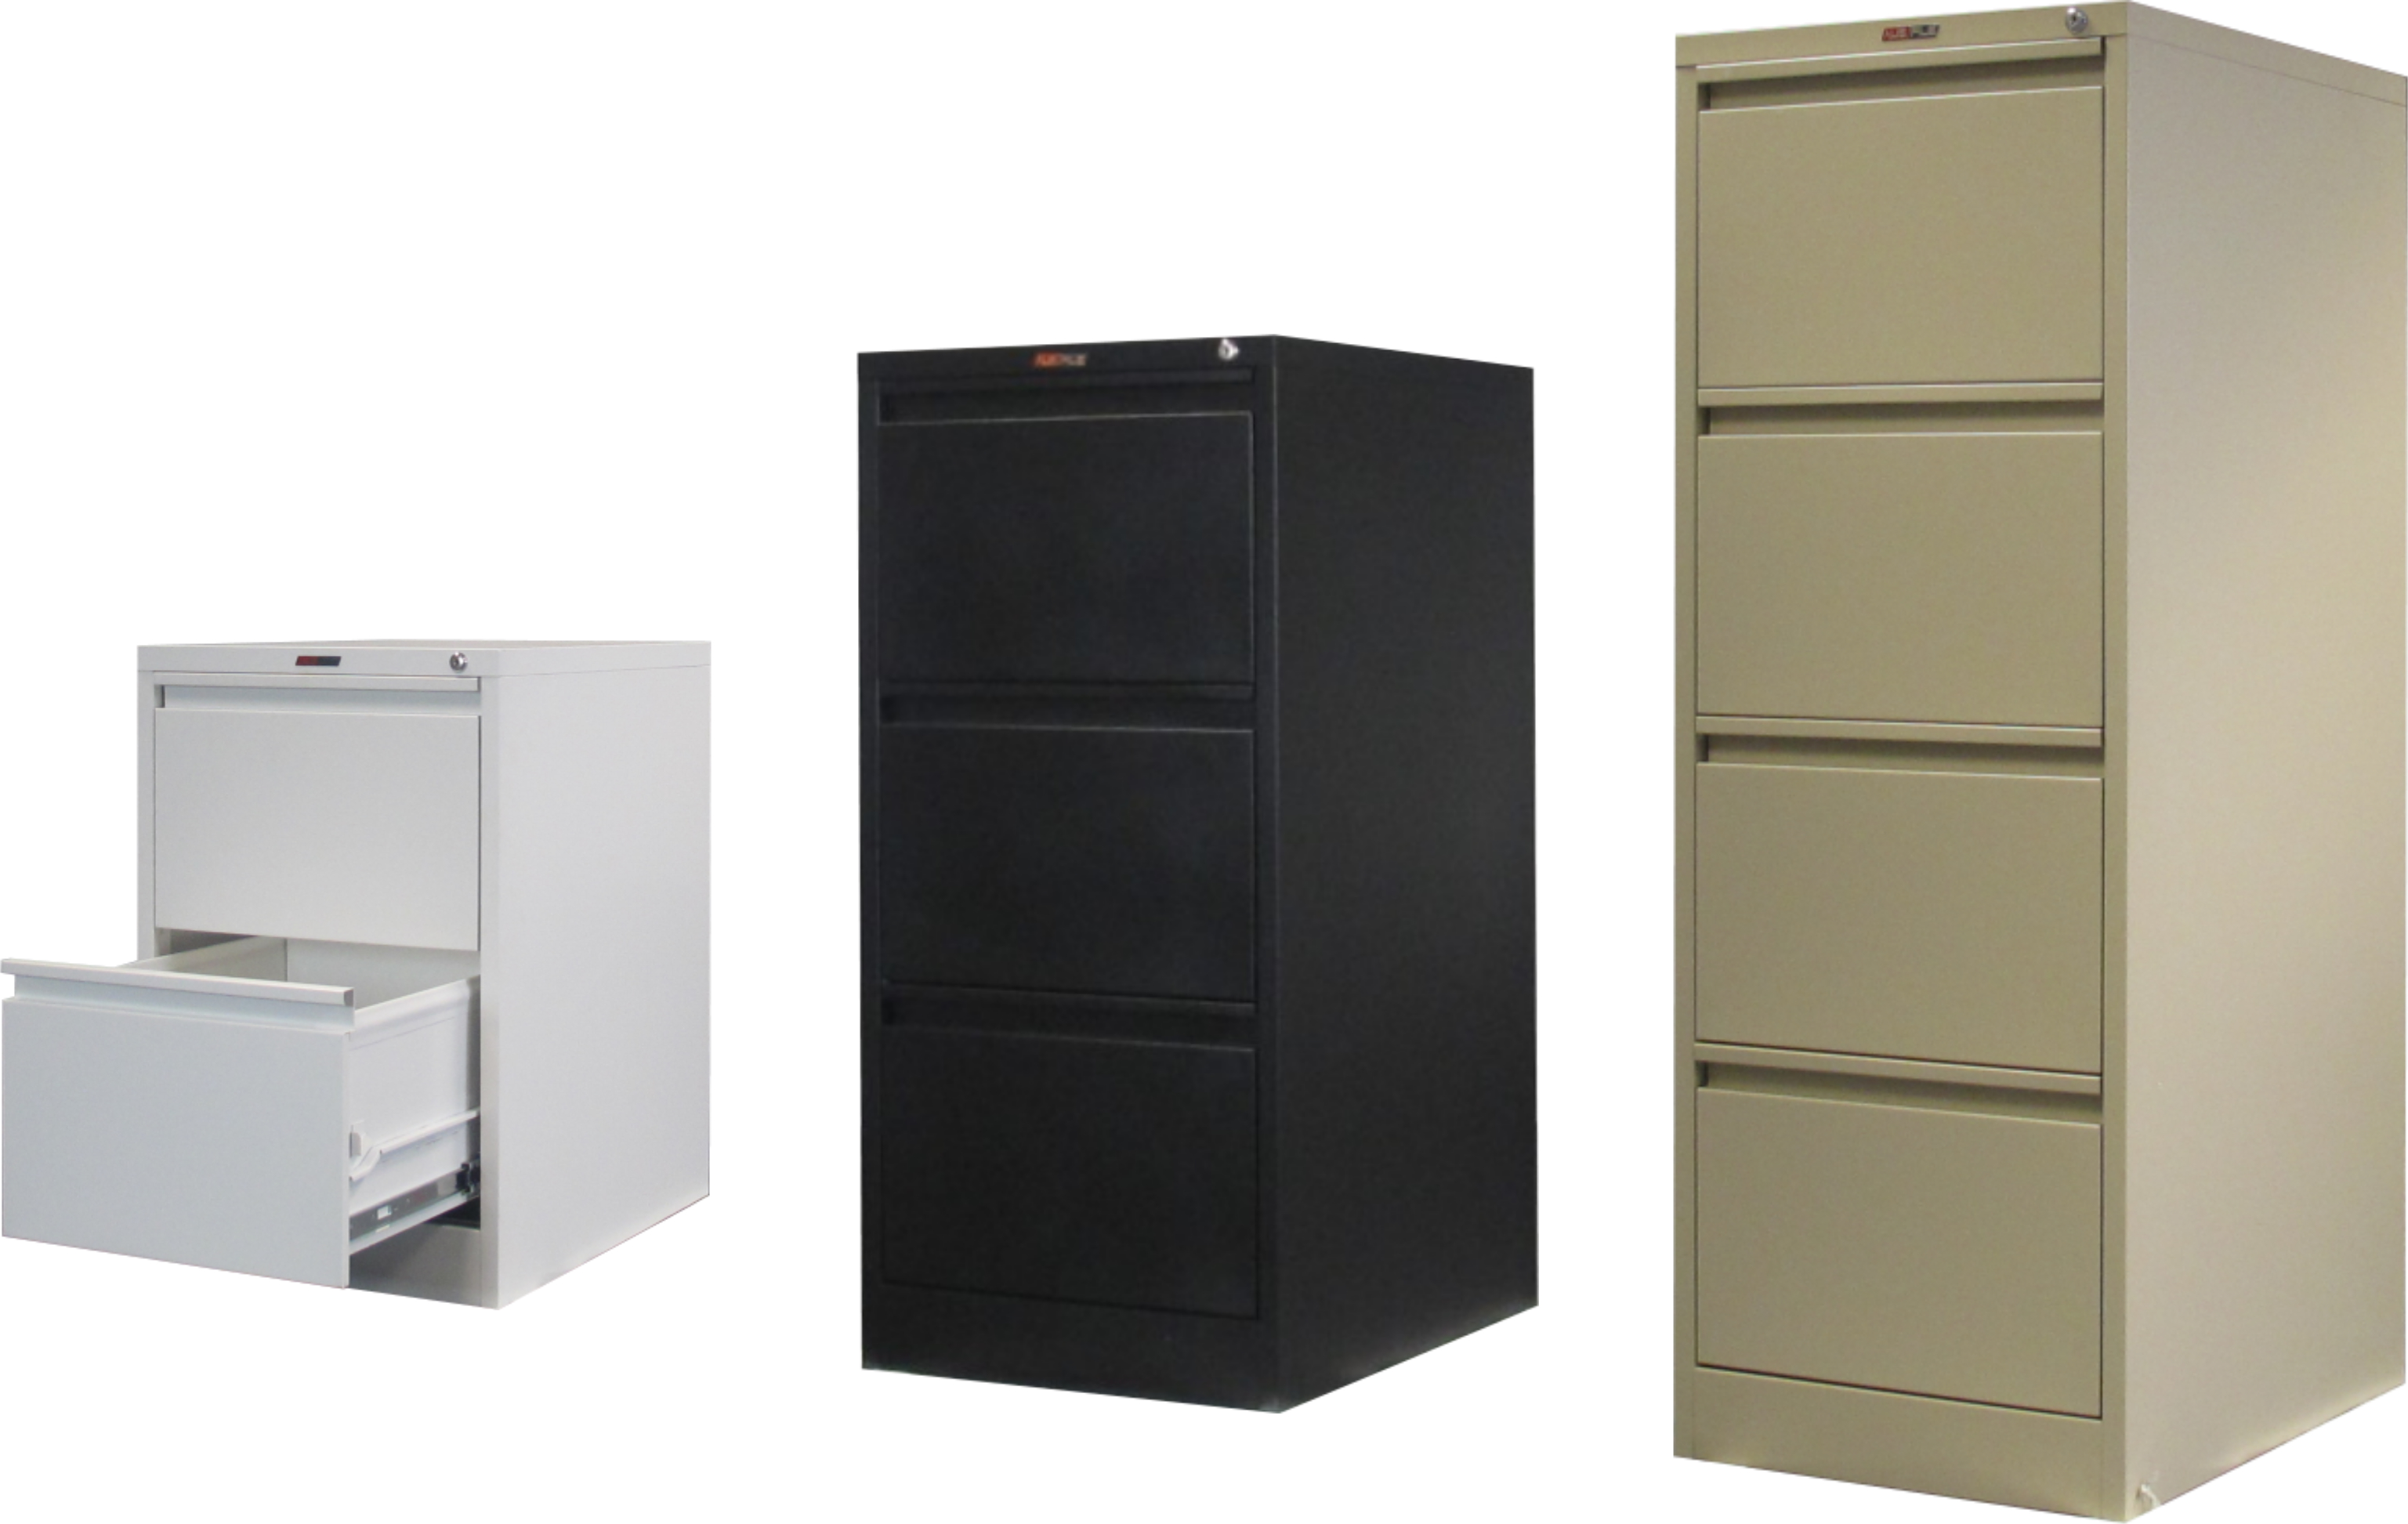 office designs file cabinet. Ausfile Vertical Filing Cabinets Office Designs File Cabinet